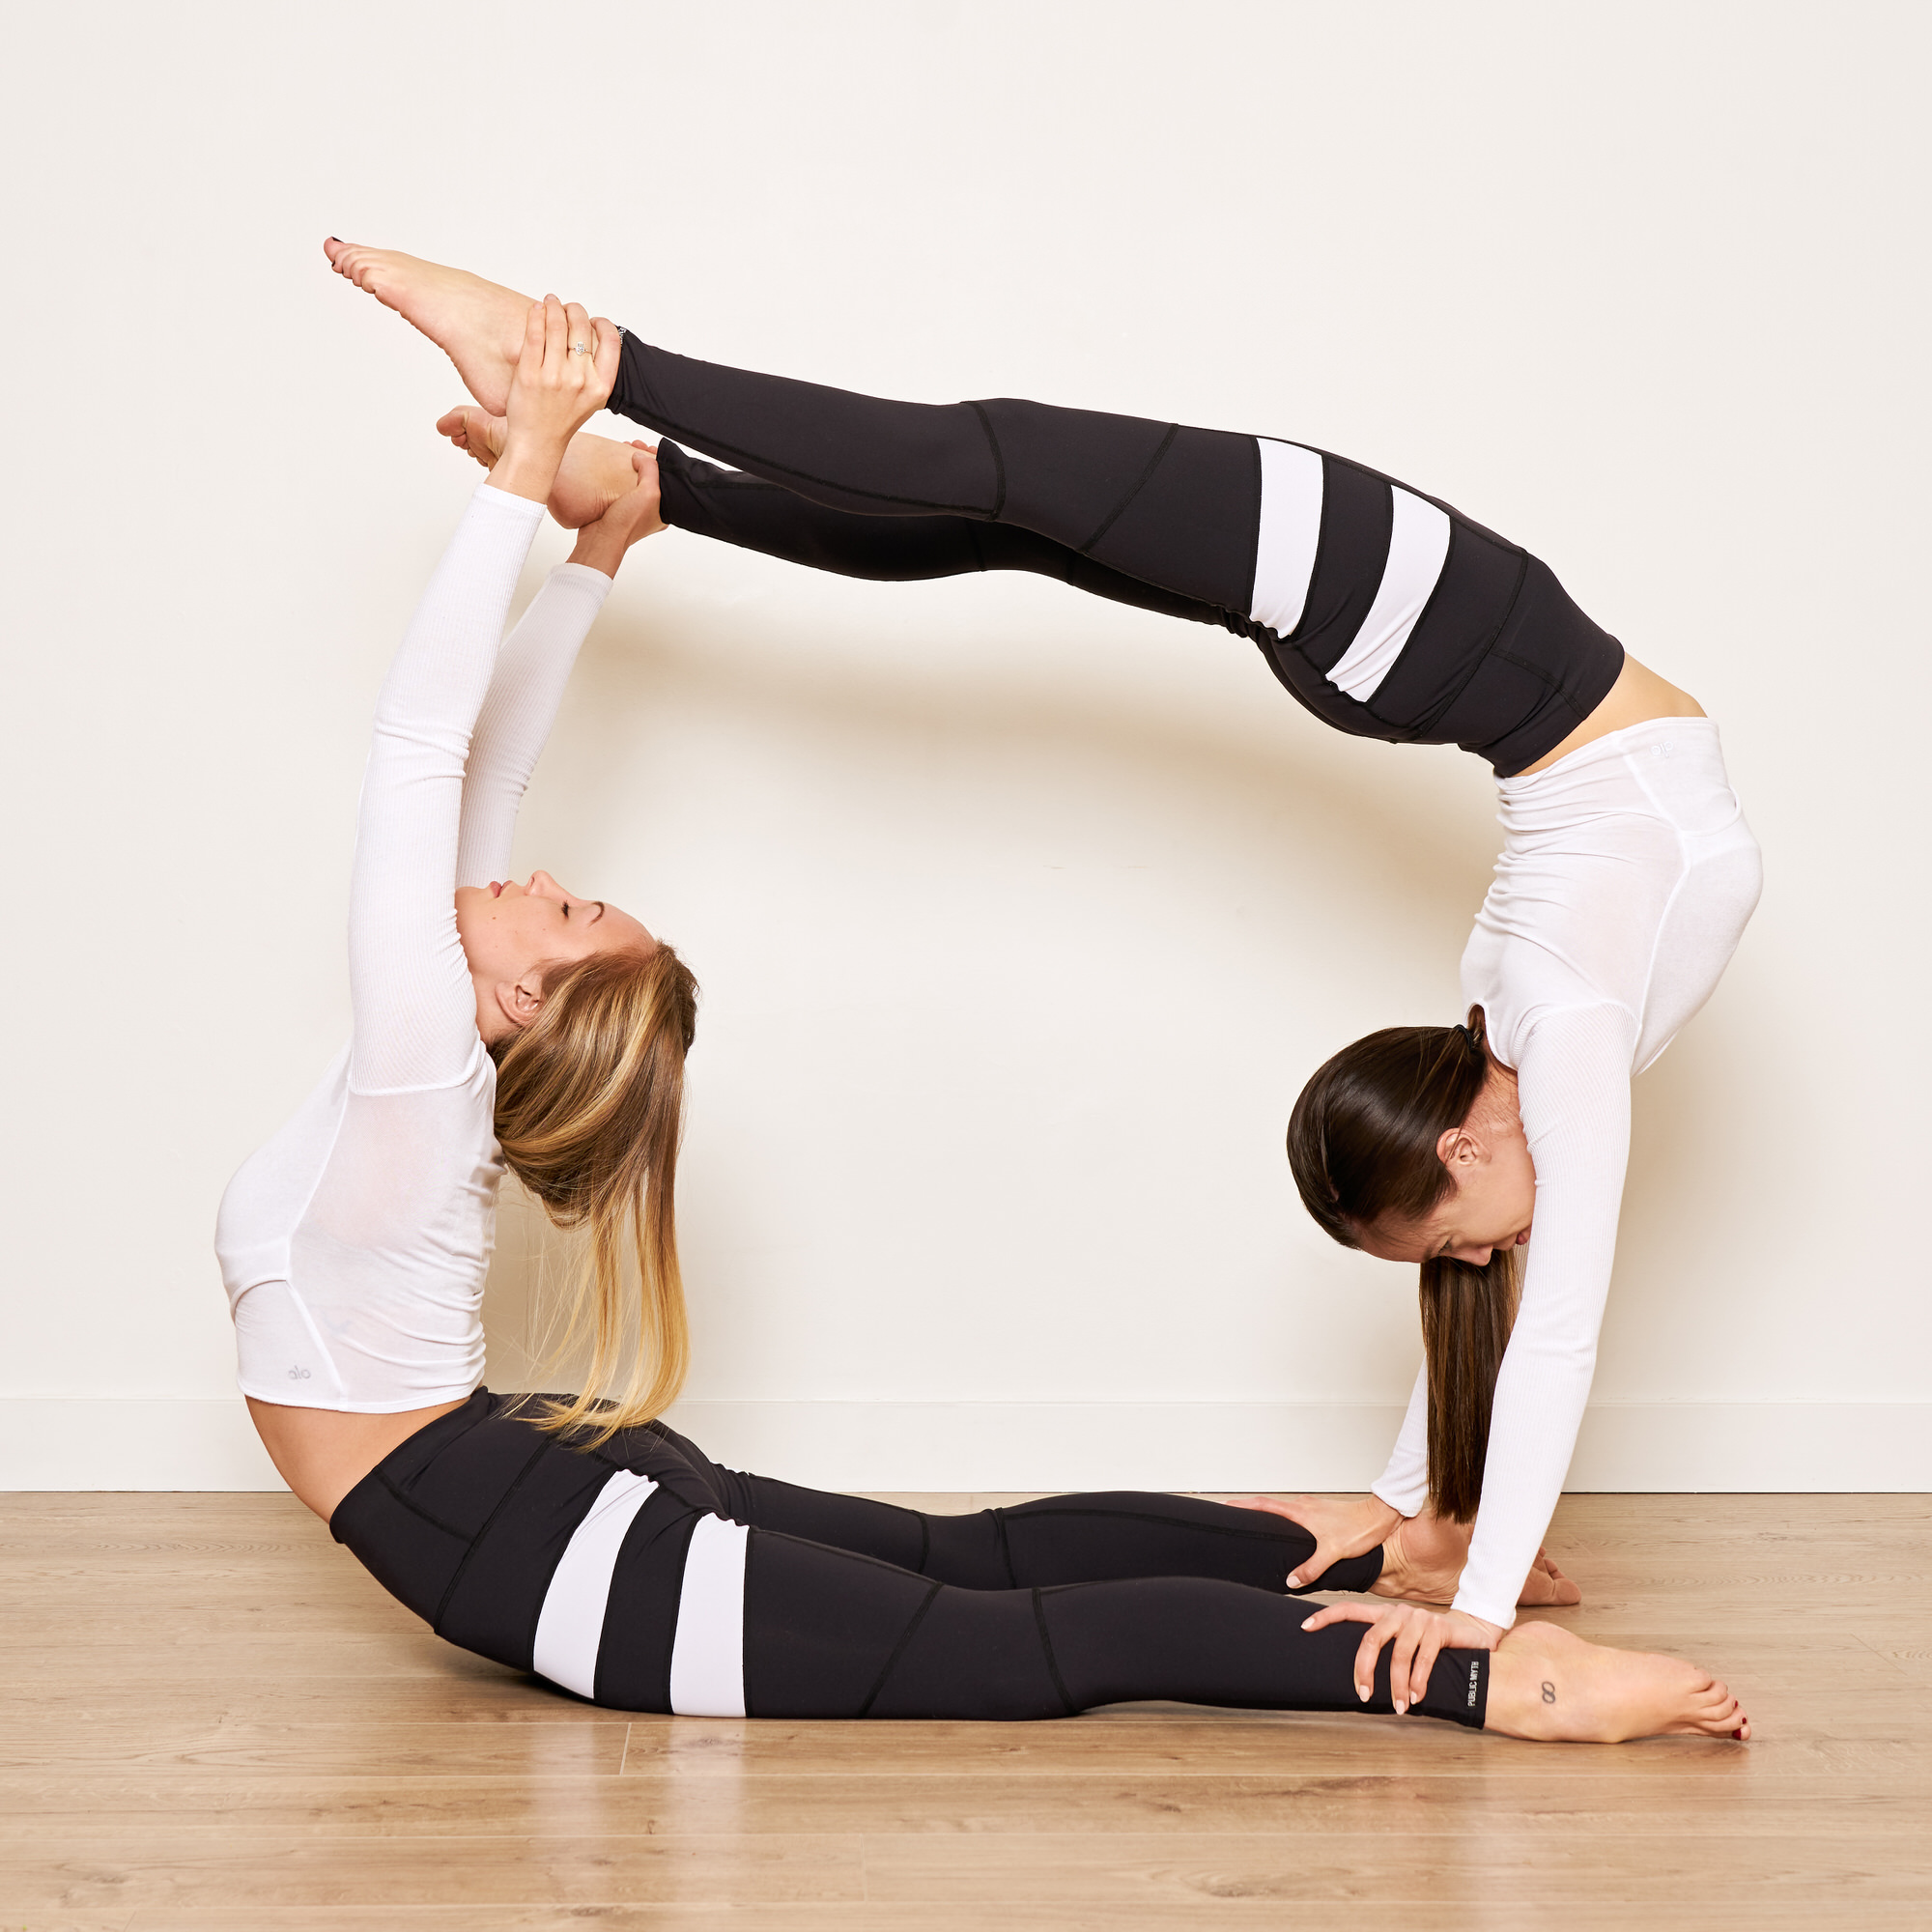 How Partner Yoga Can Strengthen Your Relationship Yoga Twins